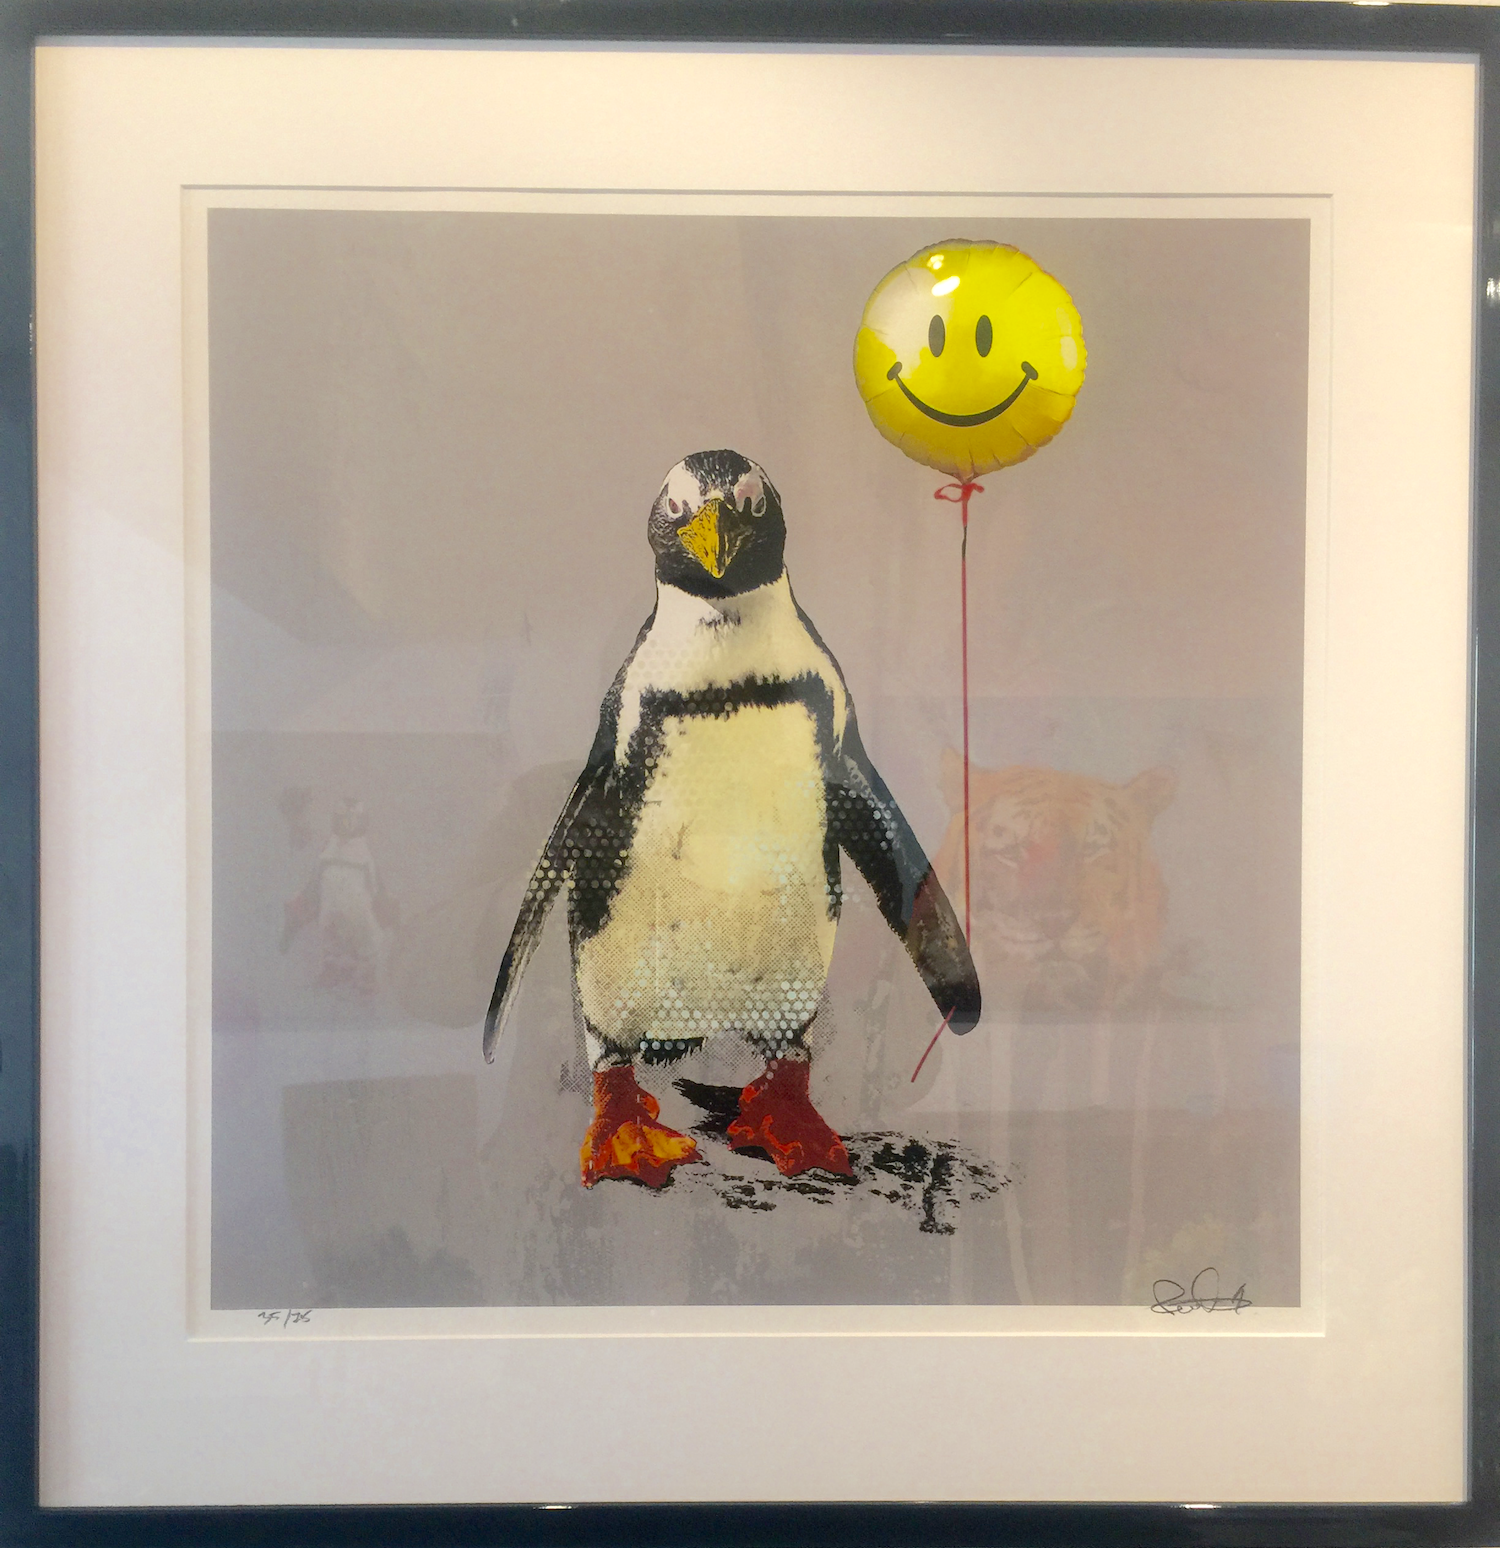 Robert Hilmersson - Don´t worry be happy, ciclée print